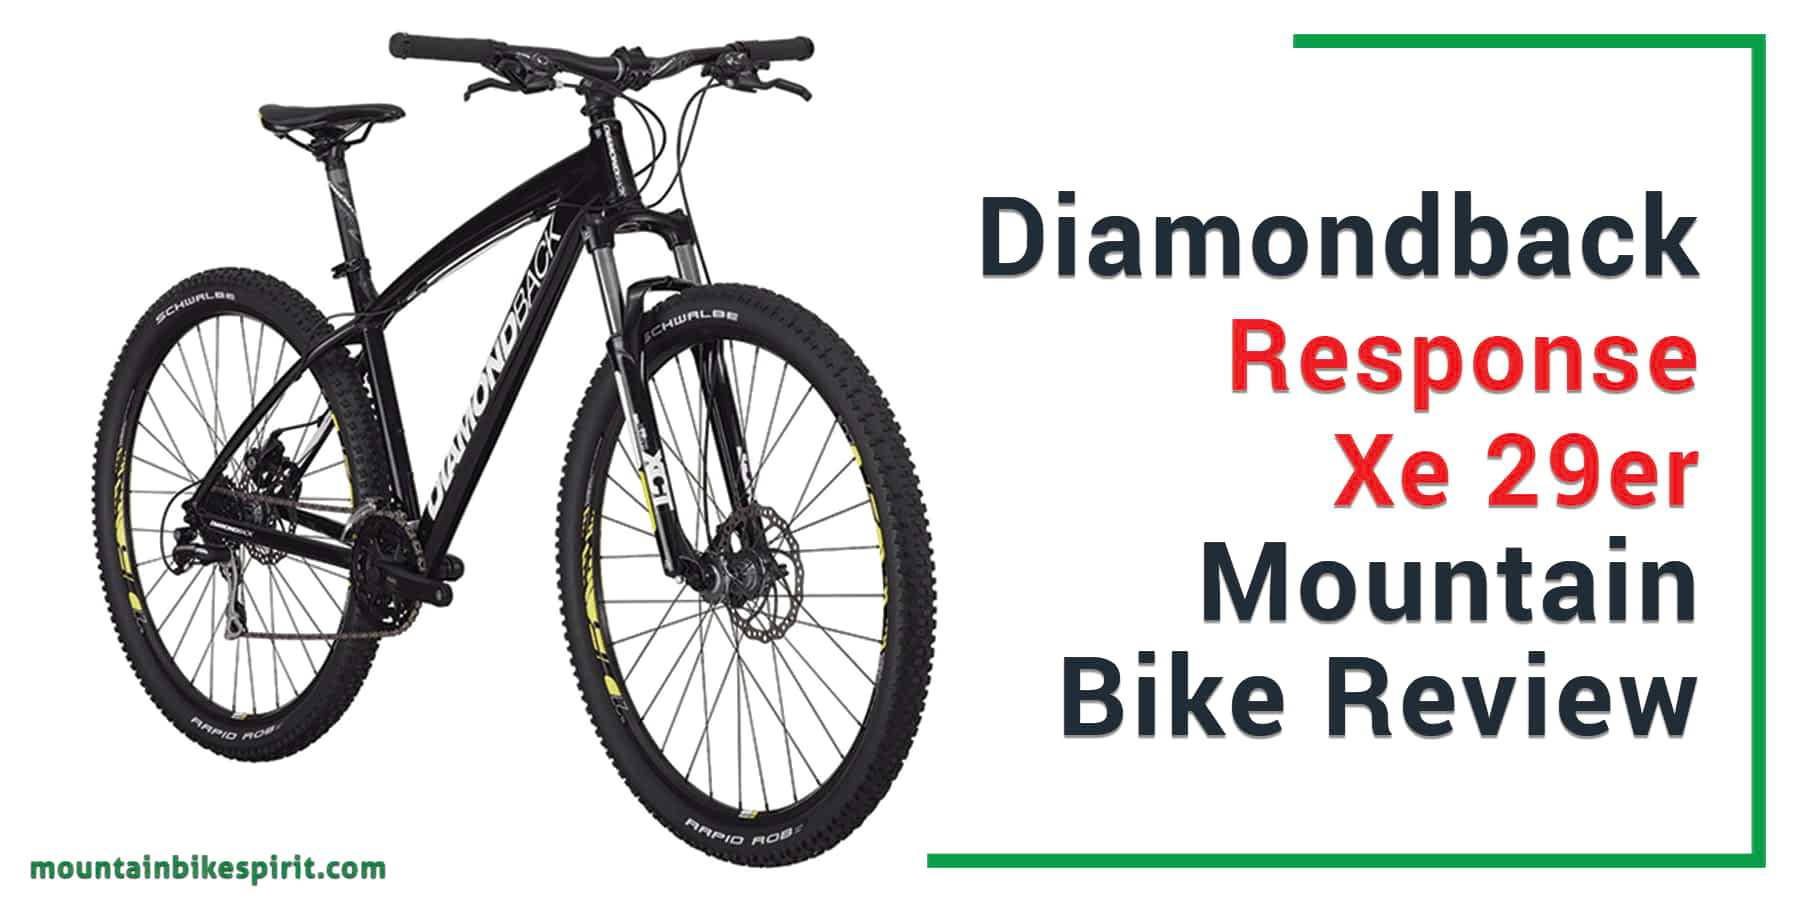 Diamondback-Response-Xe-29er-Mountain-Bike-Review